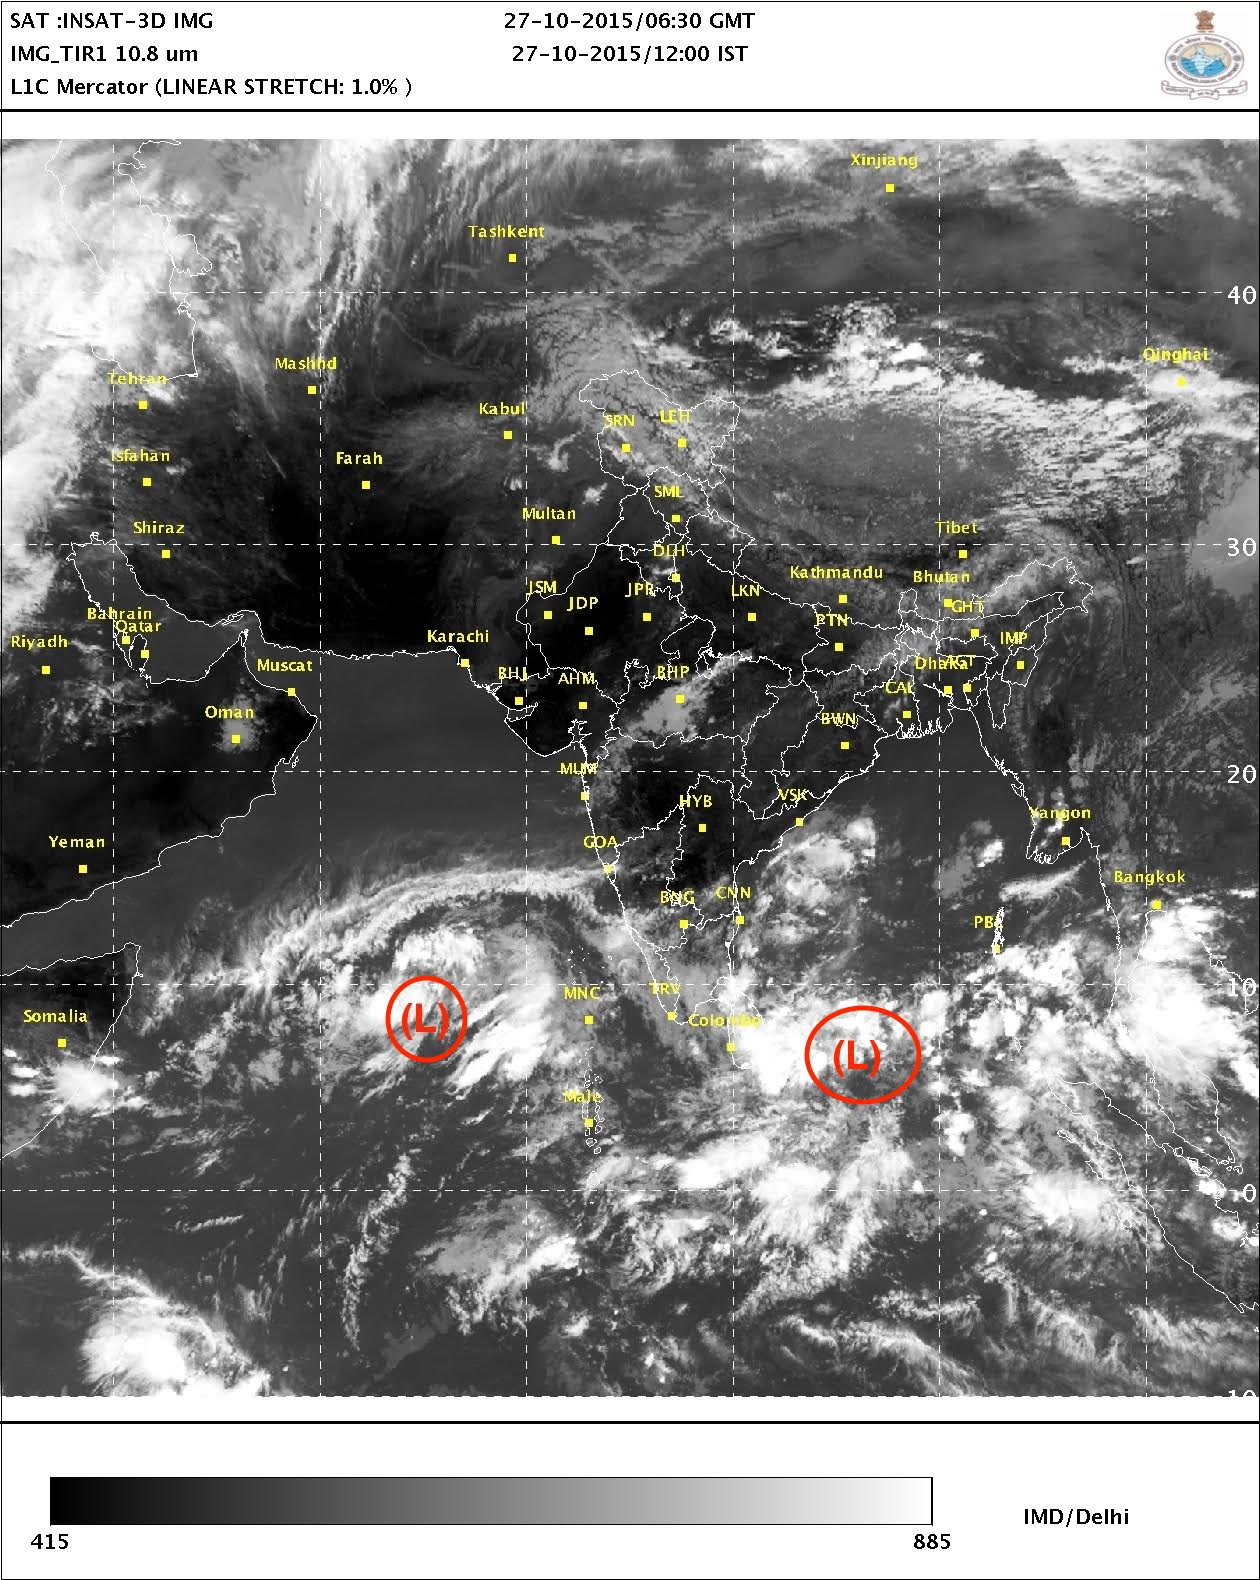 Approximate positions of low pressure systems (denoted by 'L') in the Arabian Sea and the Bay of Bengal according to a satellite image as of the afternoon on October 27 (Courtesy: India Meteorological Department)